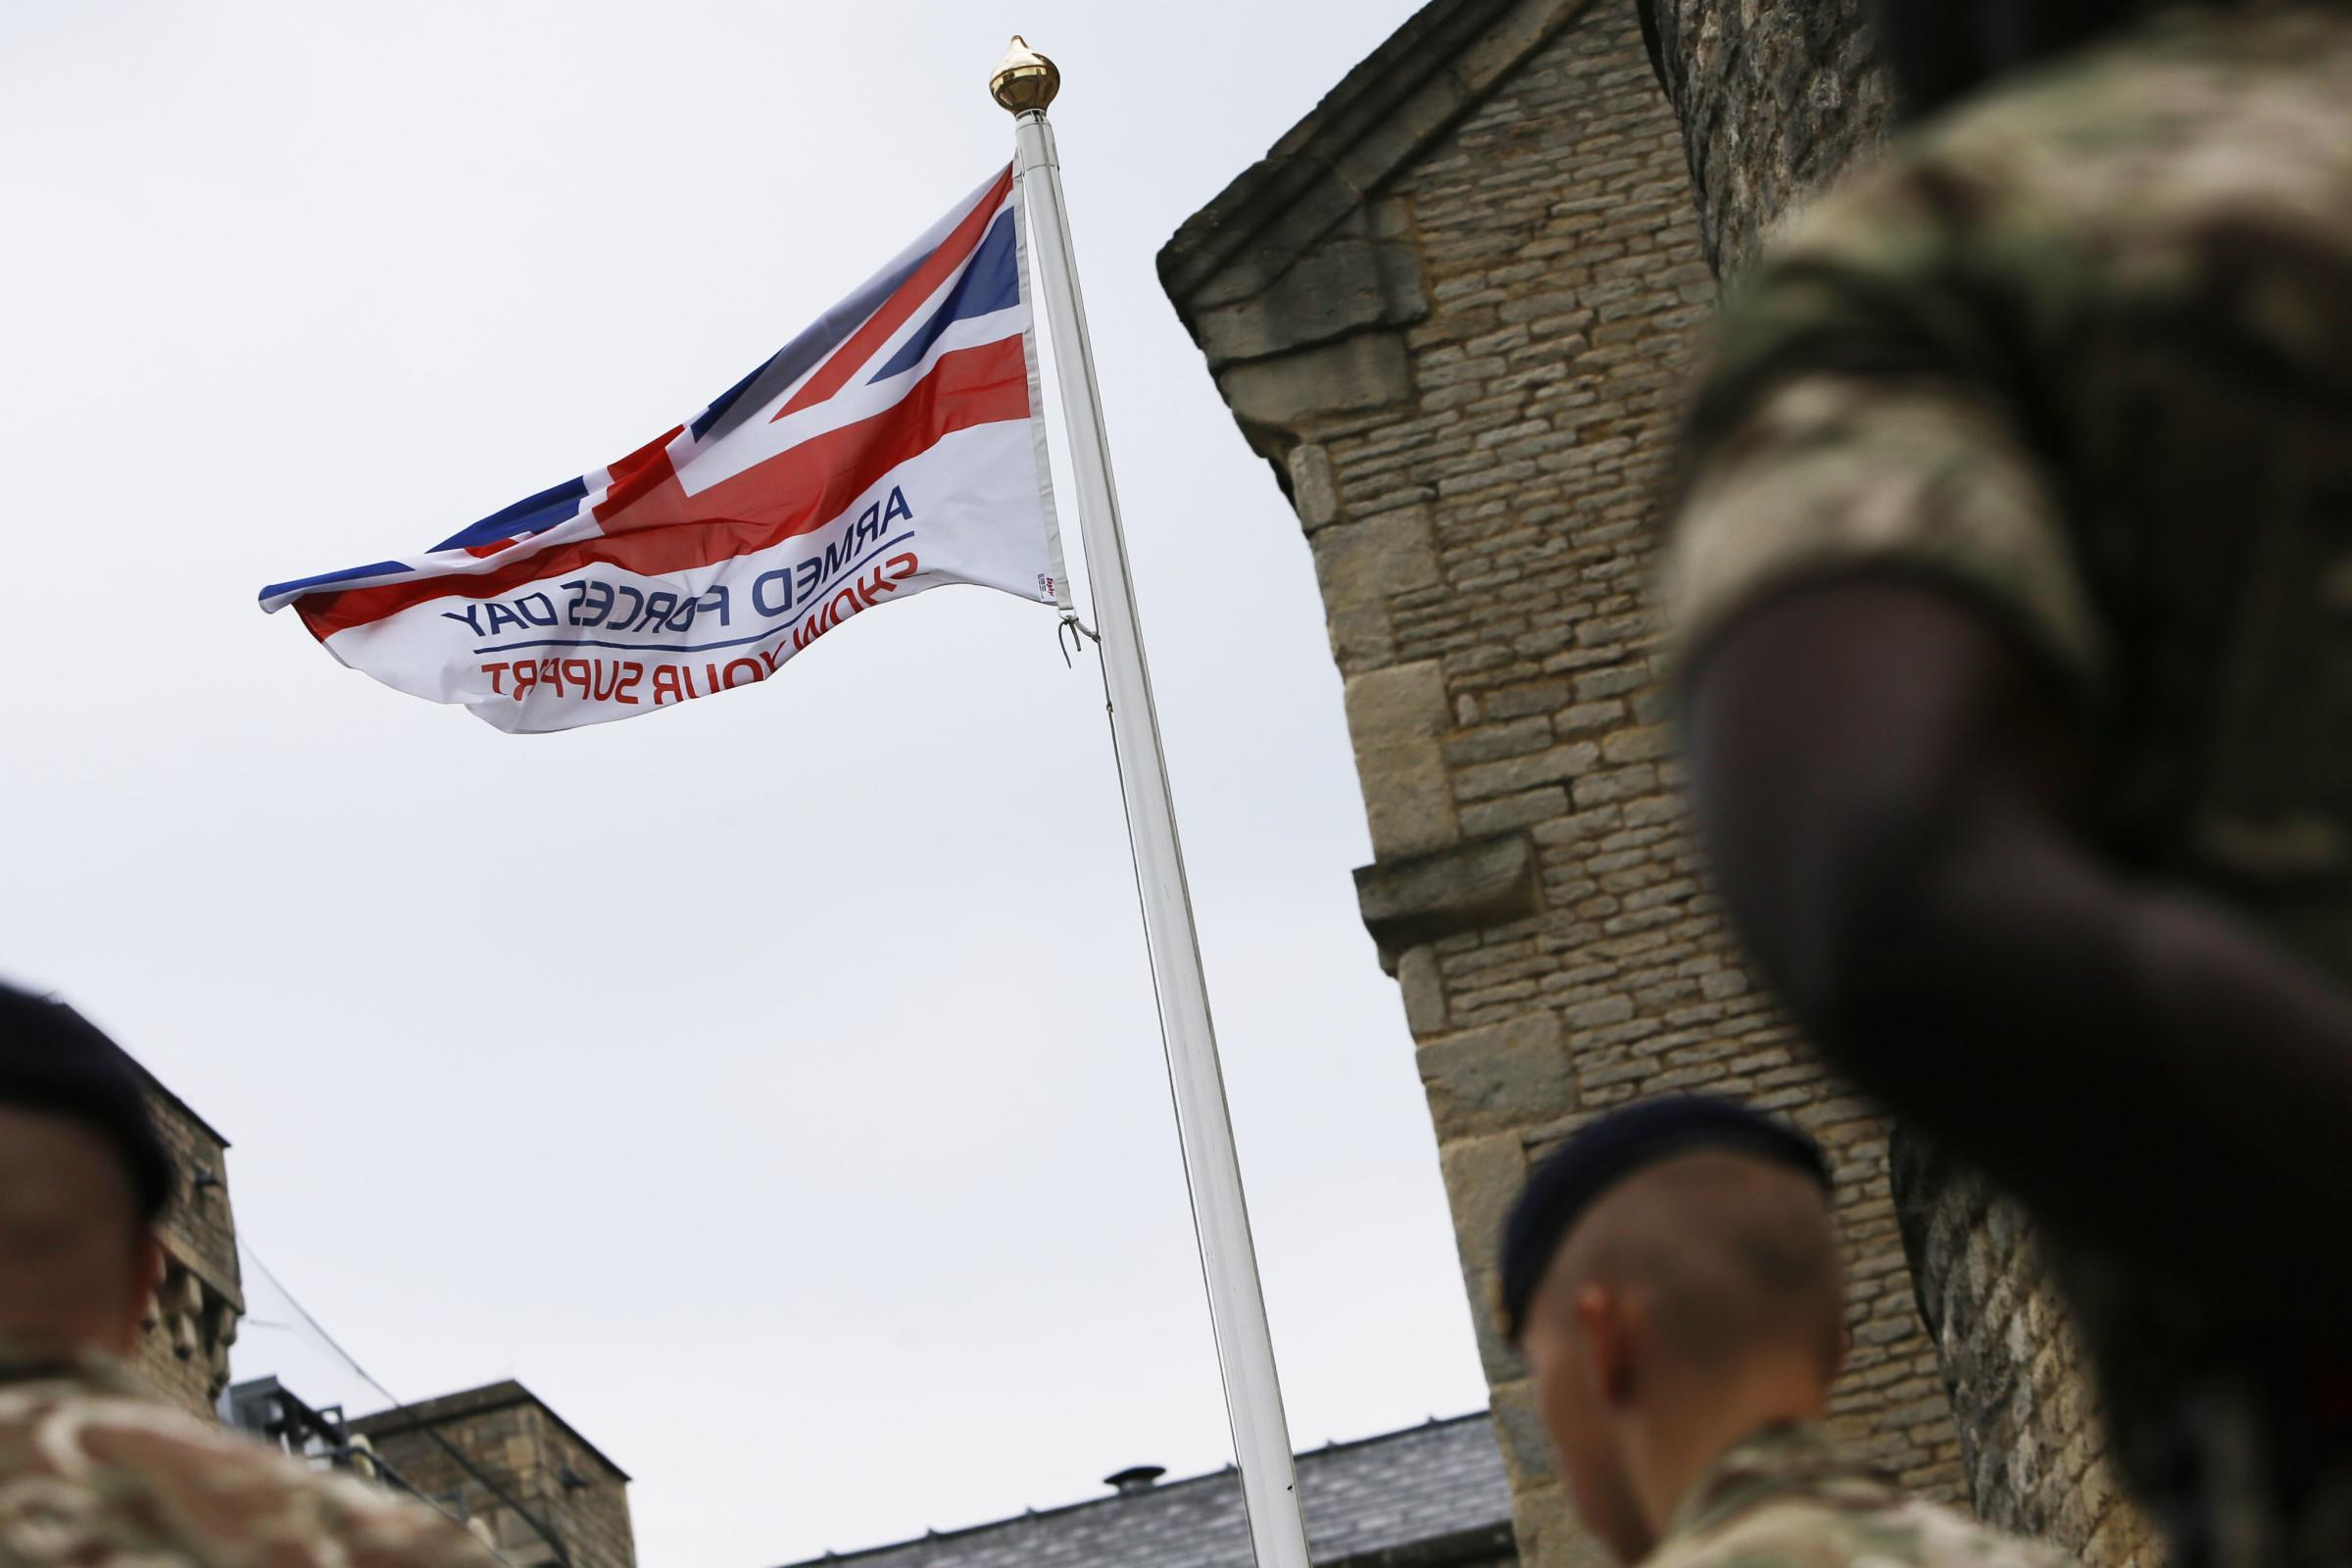 Oxfordshire council raises flag for Armed Forces Day